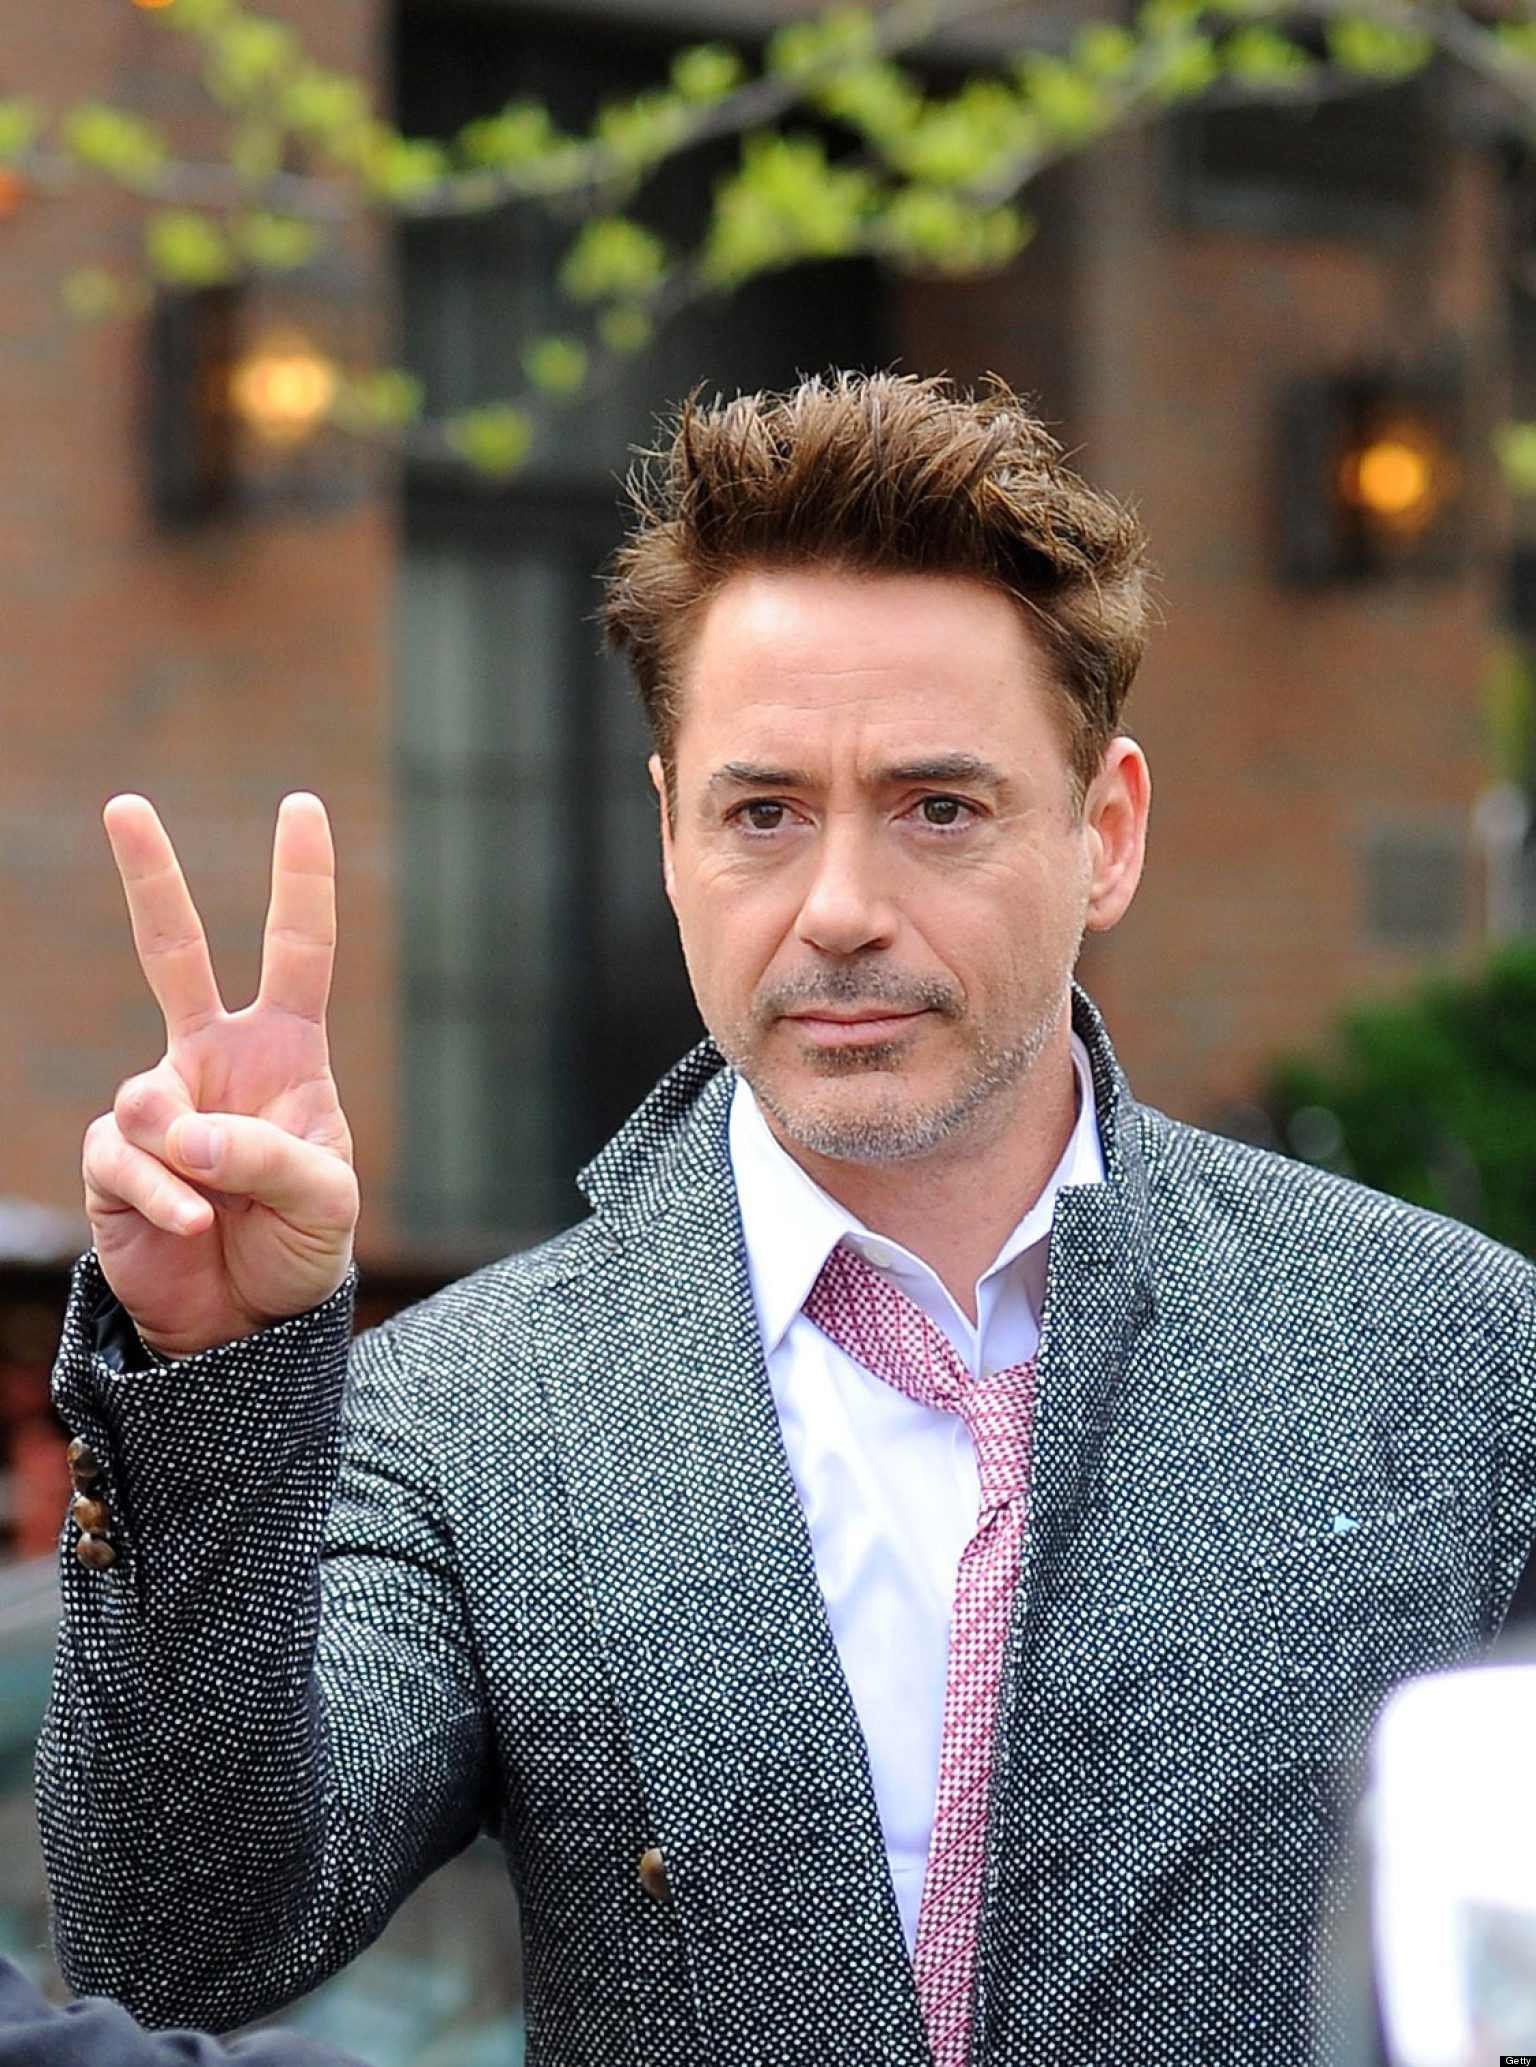 Robert Downey Jr. In 'Avengers 2' & '3': Iron Man Signs With Marvel ... Robert Downey